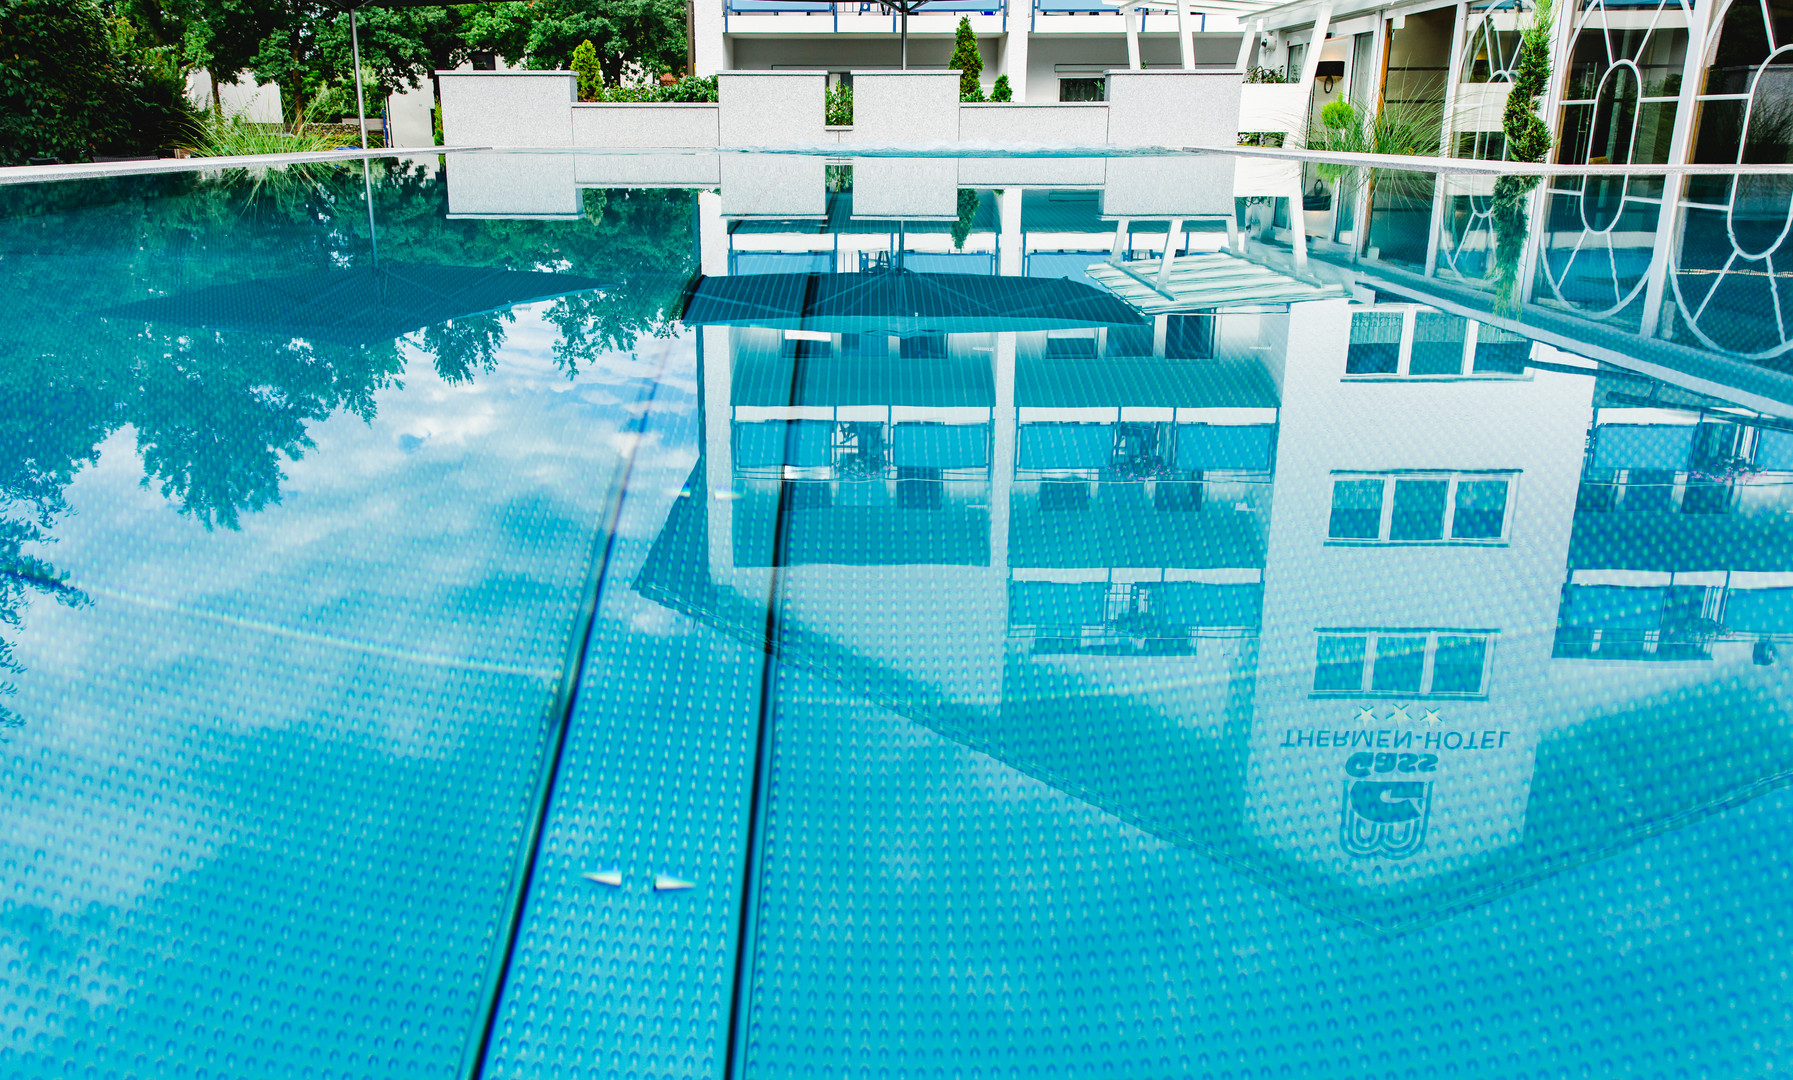 Pool Thermenhotel Gass